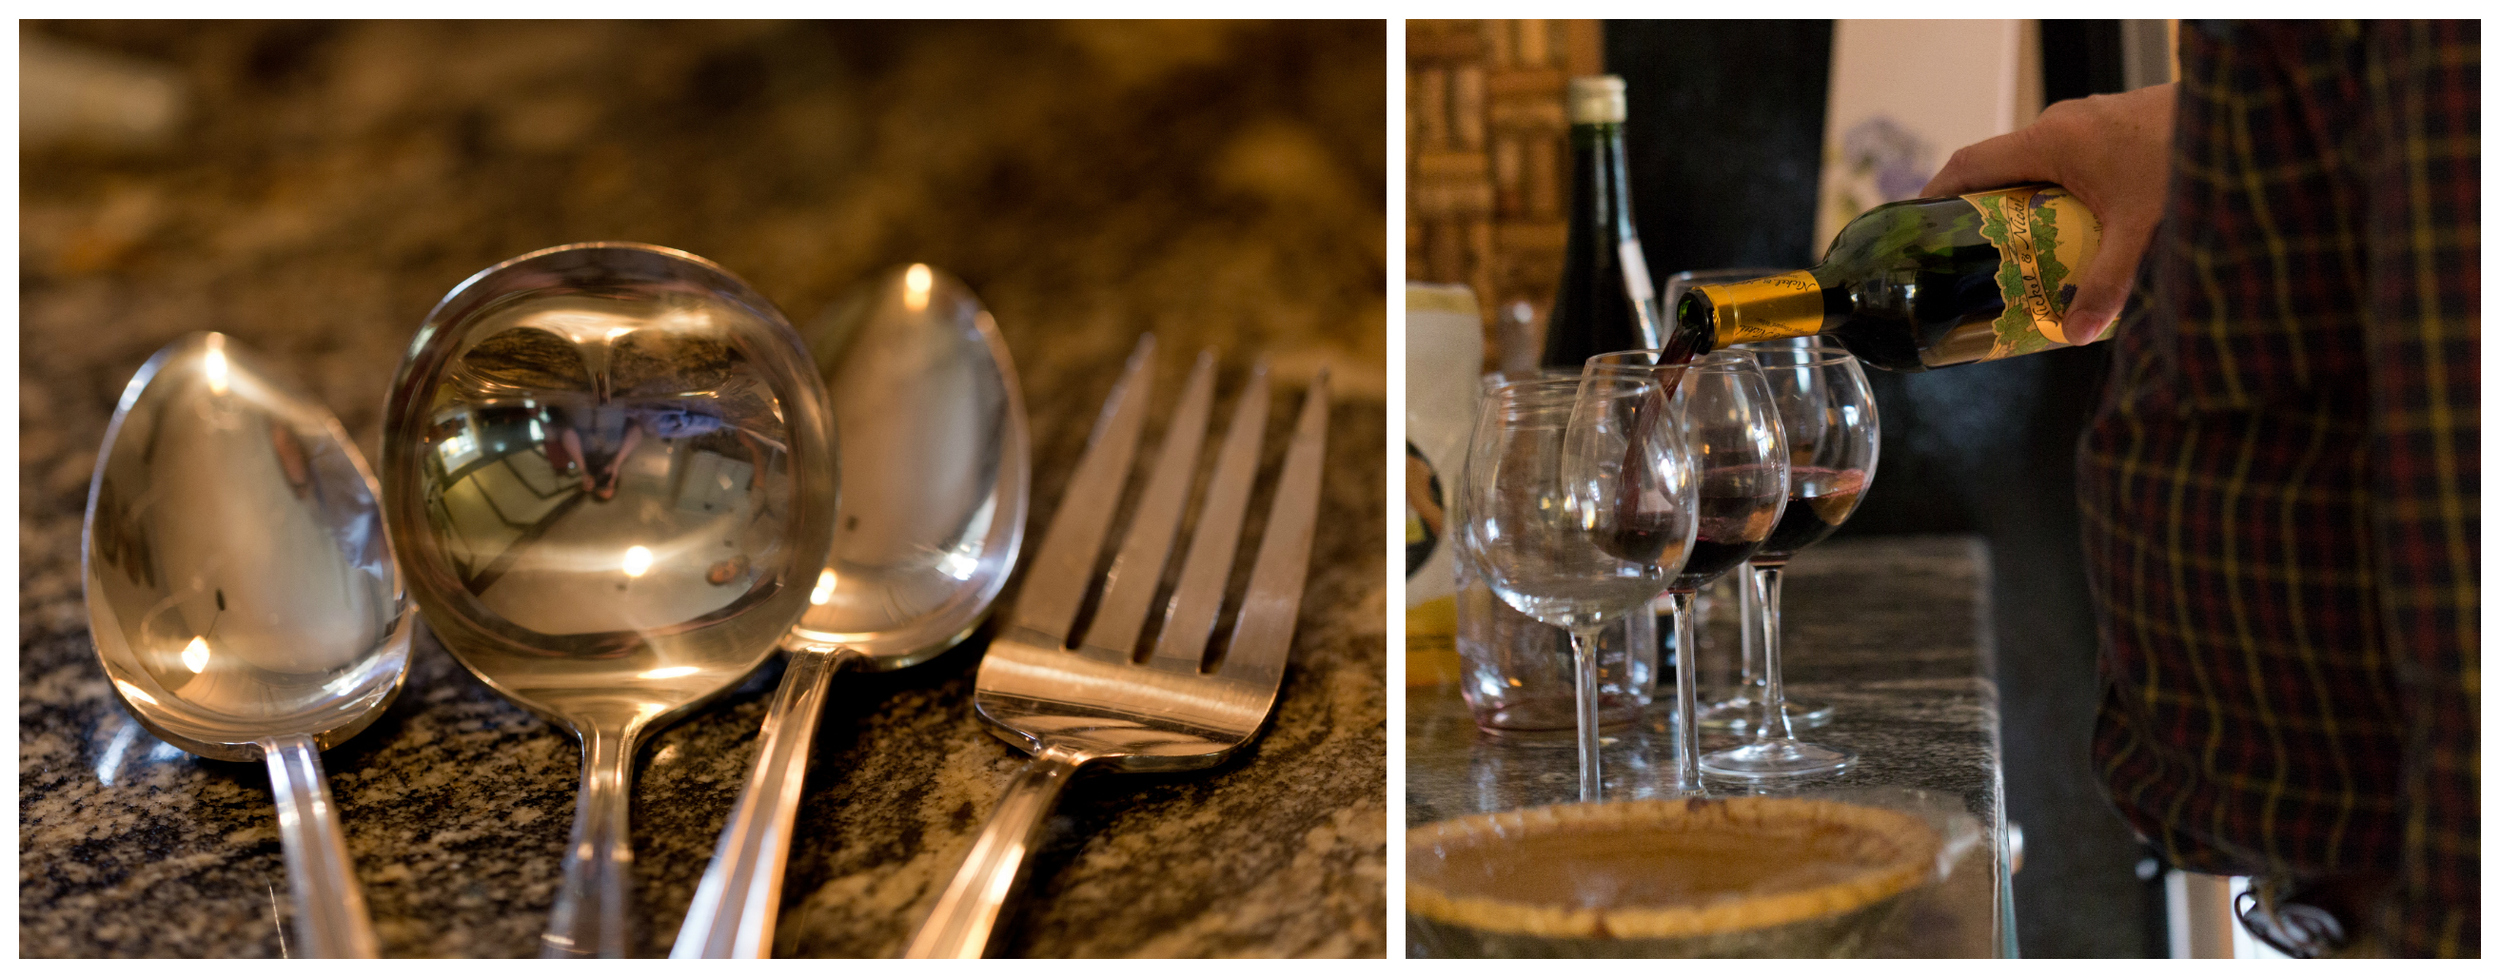 silver serving utensils and pouring wine into glasses